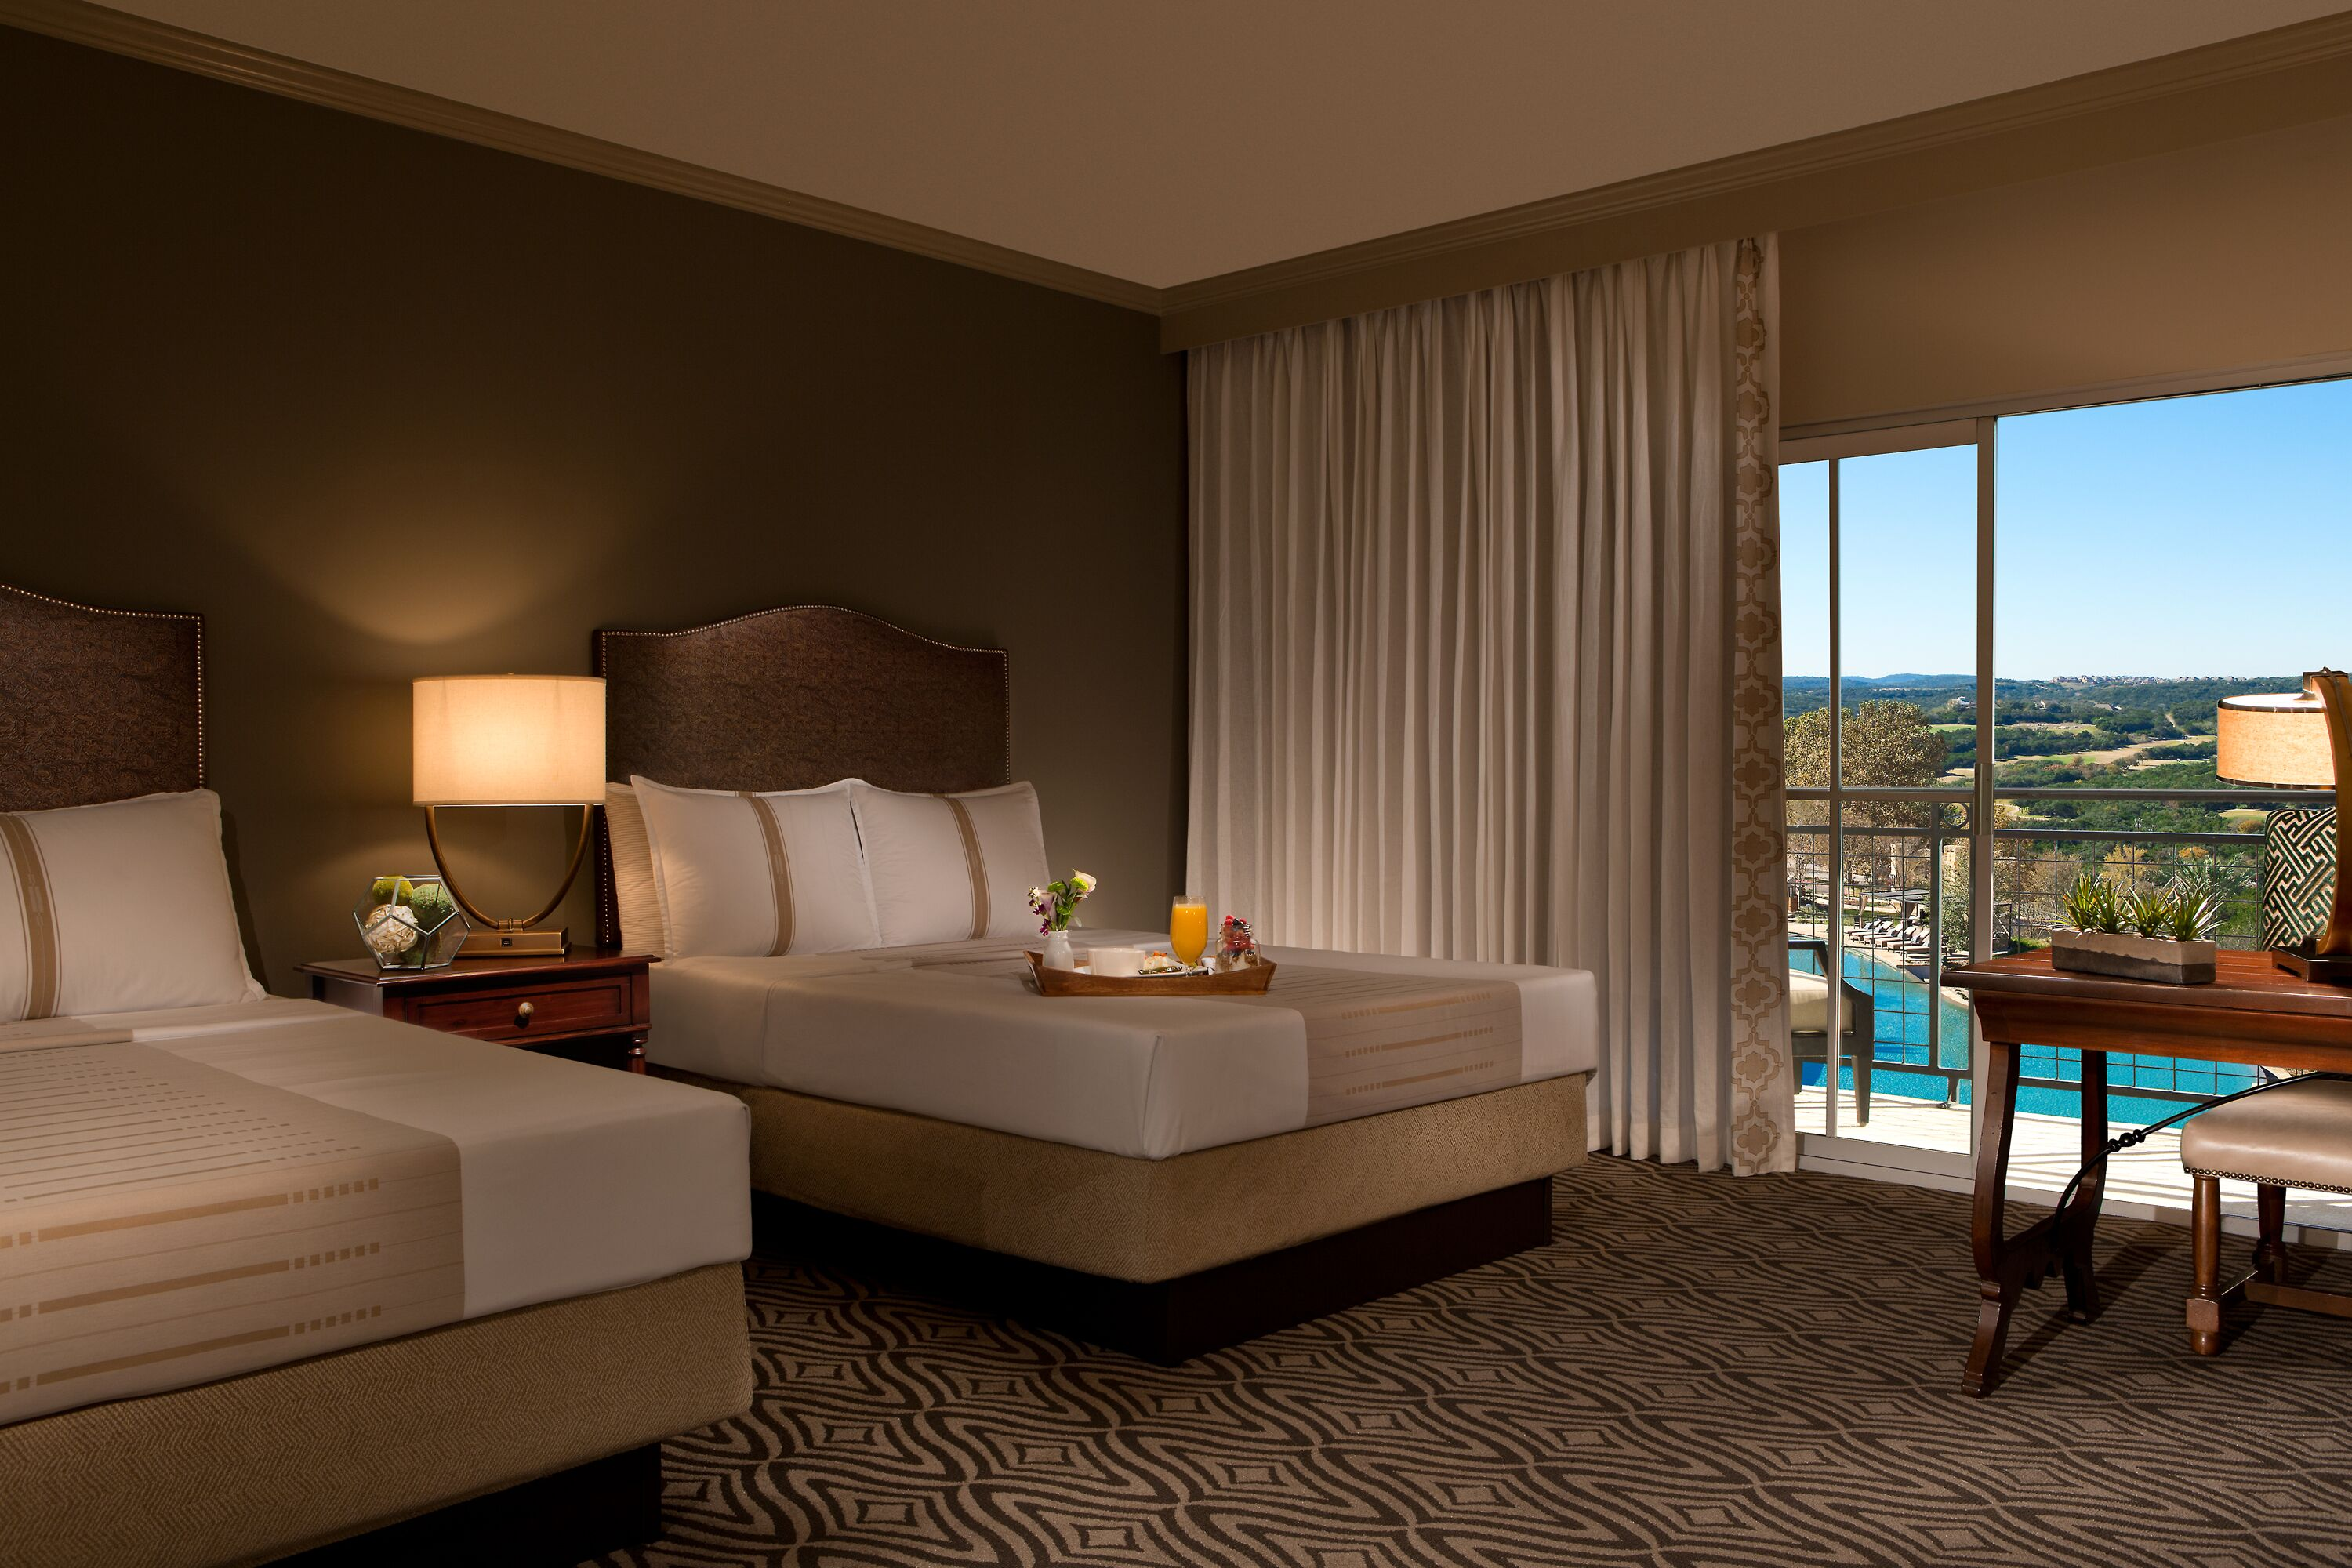 La Cantera Resort San Antonio double bed room